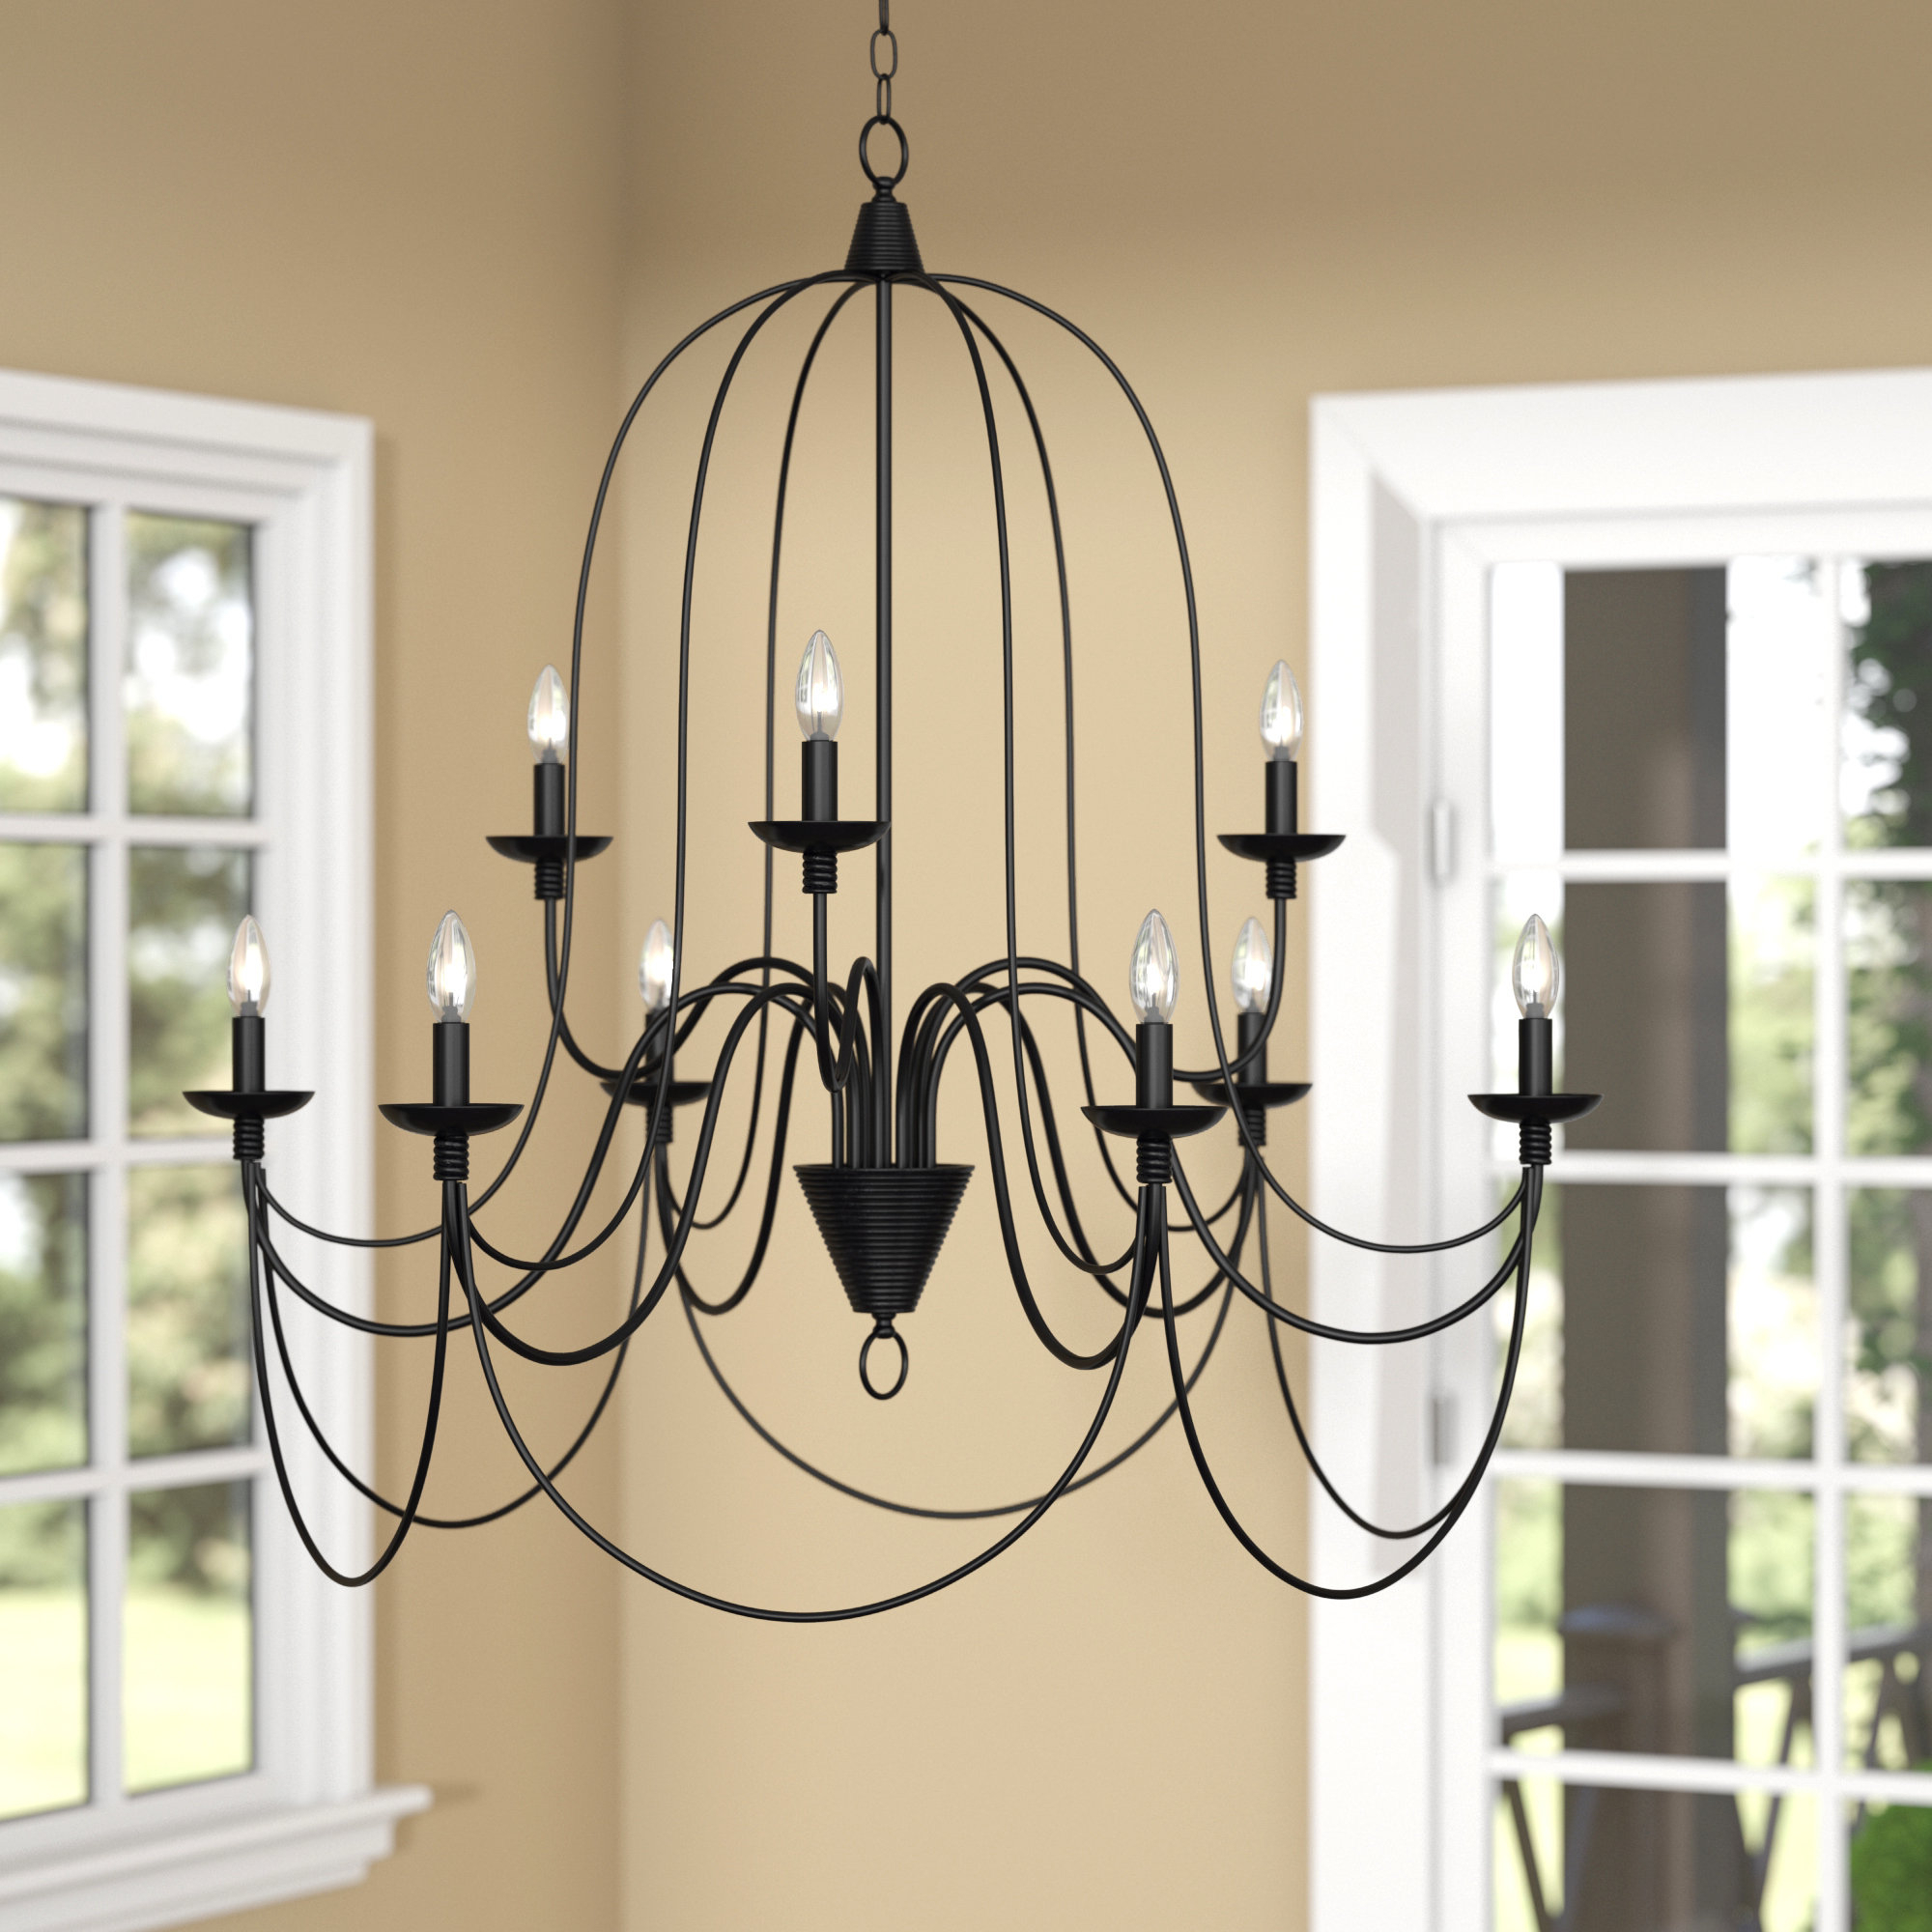 Giverny 9 Light Candle Style Chandeliers For 2019 Watford 9 Light Candle Style Chandelier (View 8 of 25)